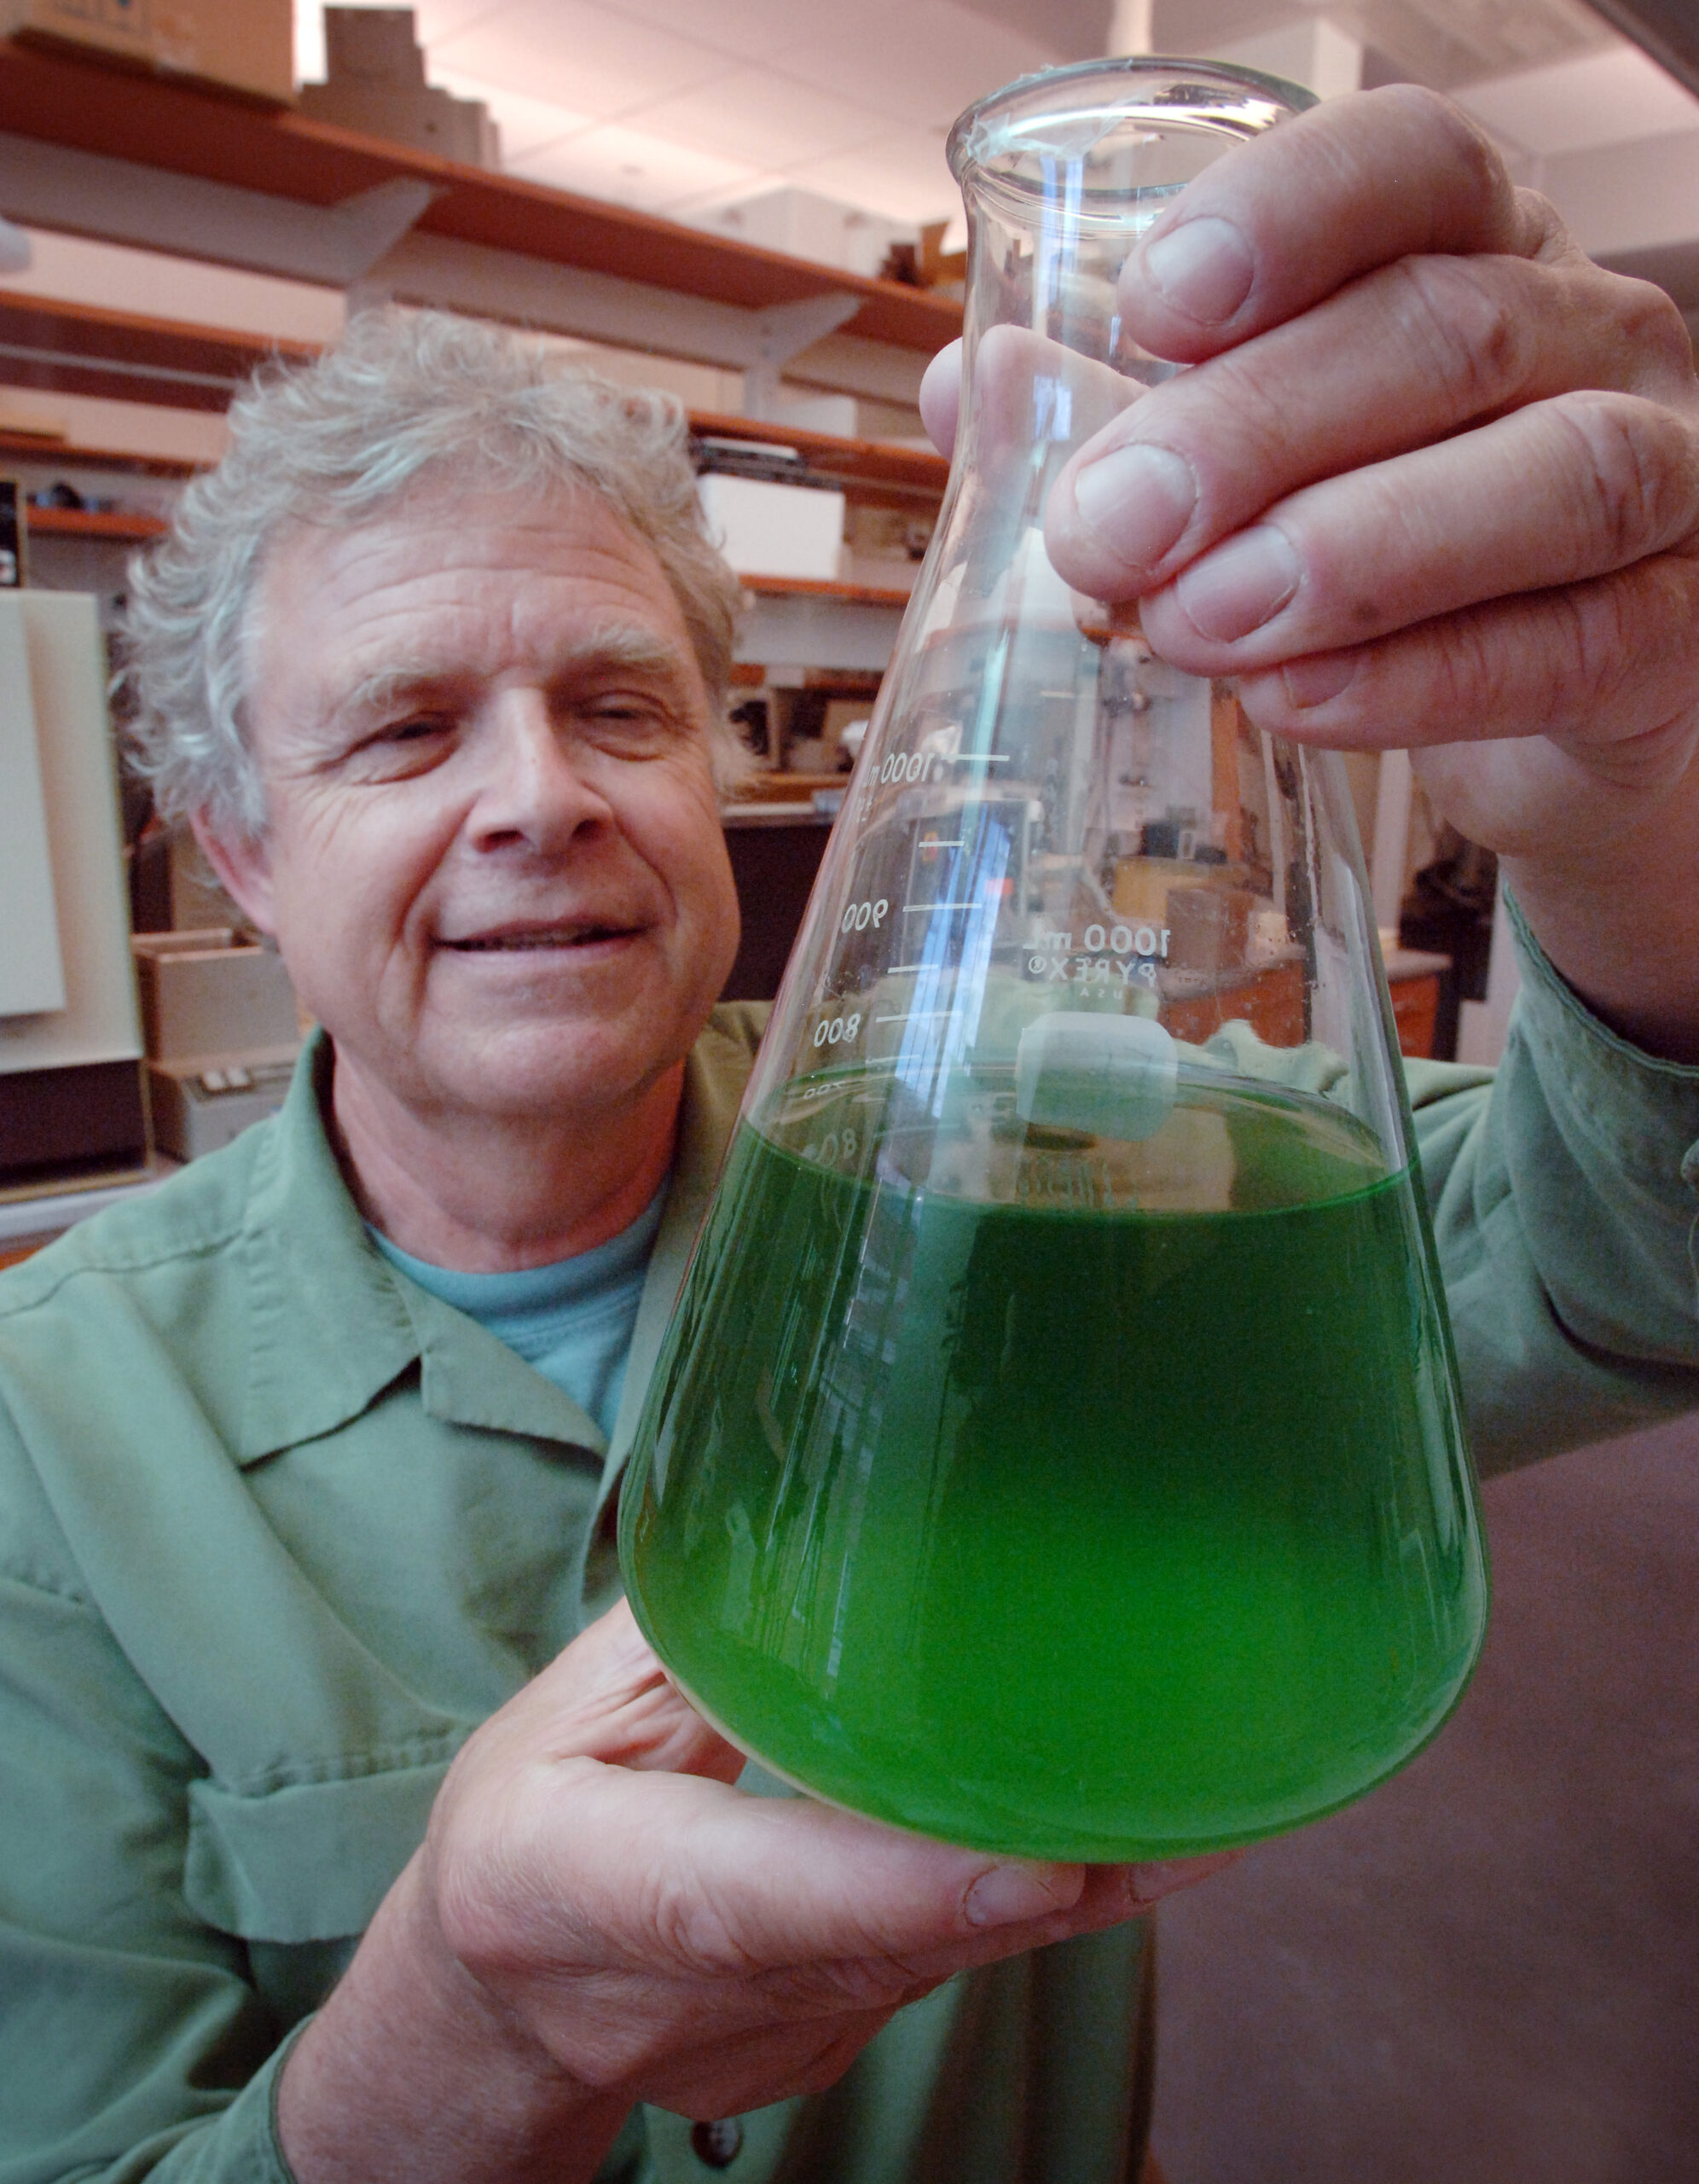 Hans Paerl with algae bloom in hand. Photograph courtesy of UNC.